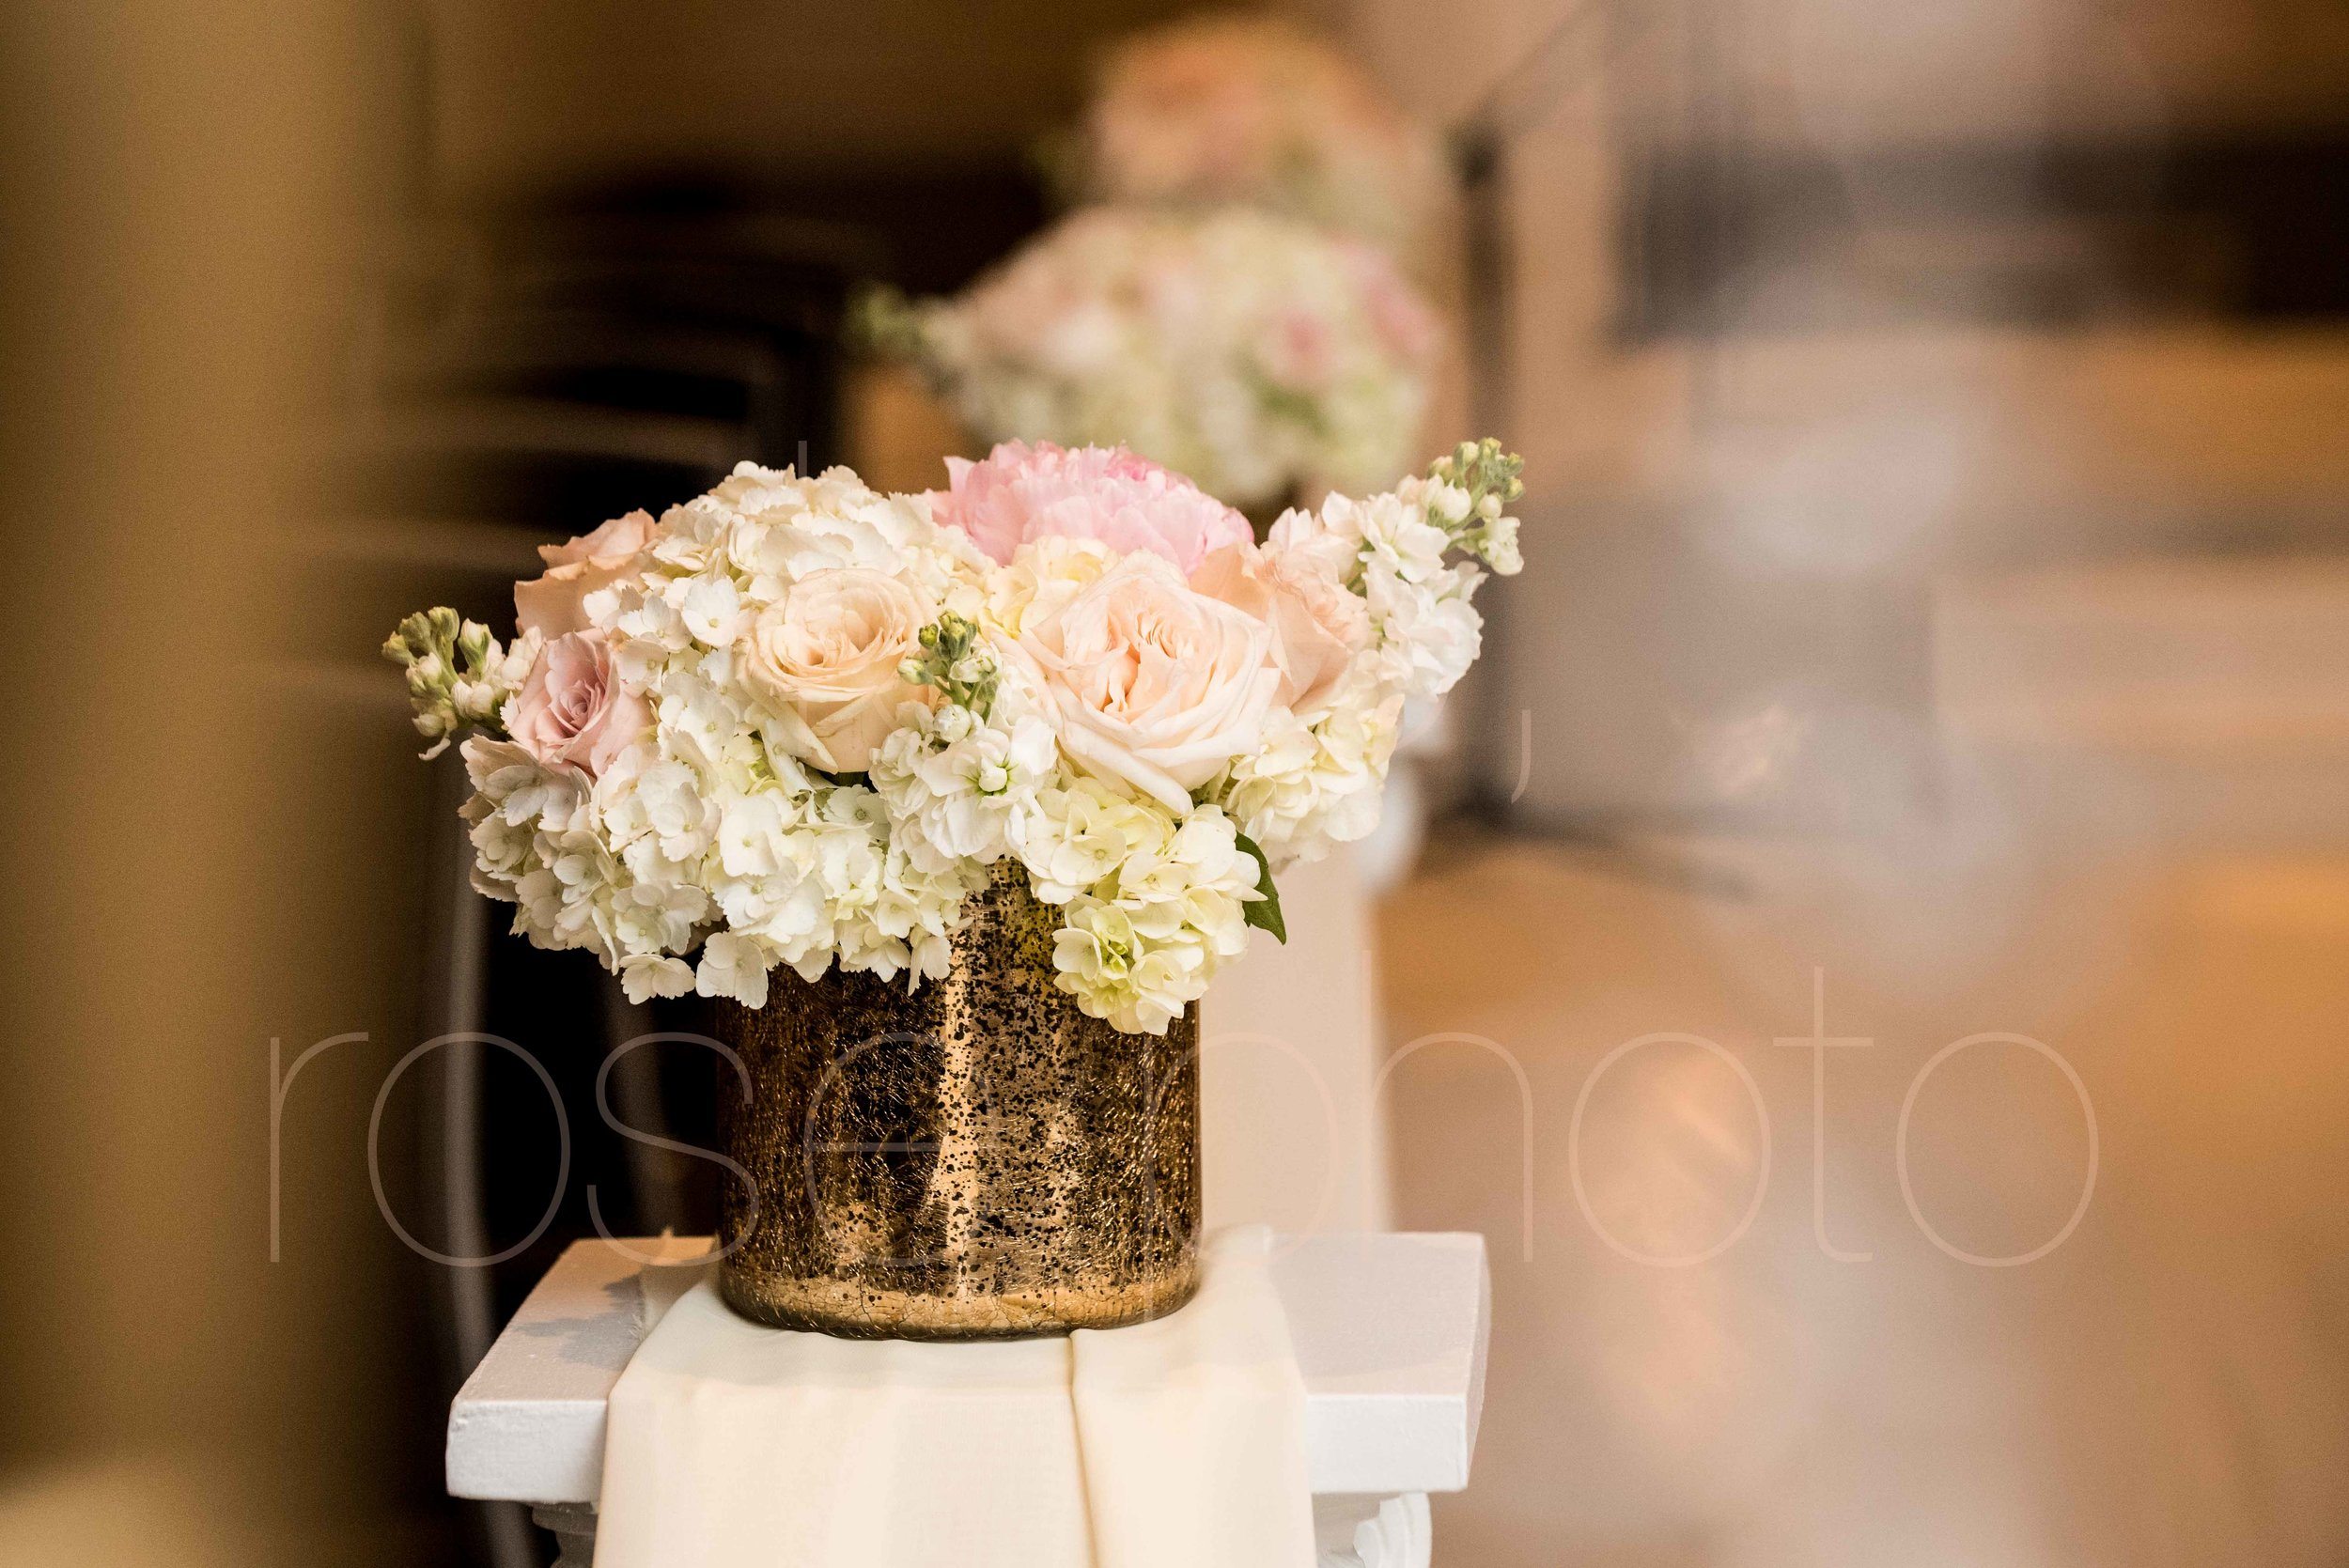 Rose Photo downtown Chicago wedding mag mile new years eve best wedding photography-36.jpg